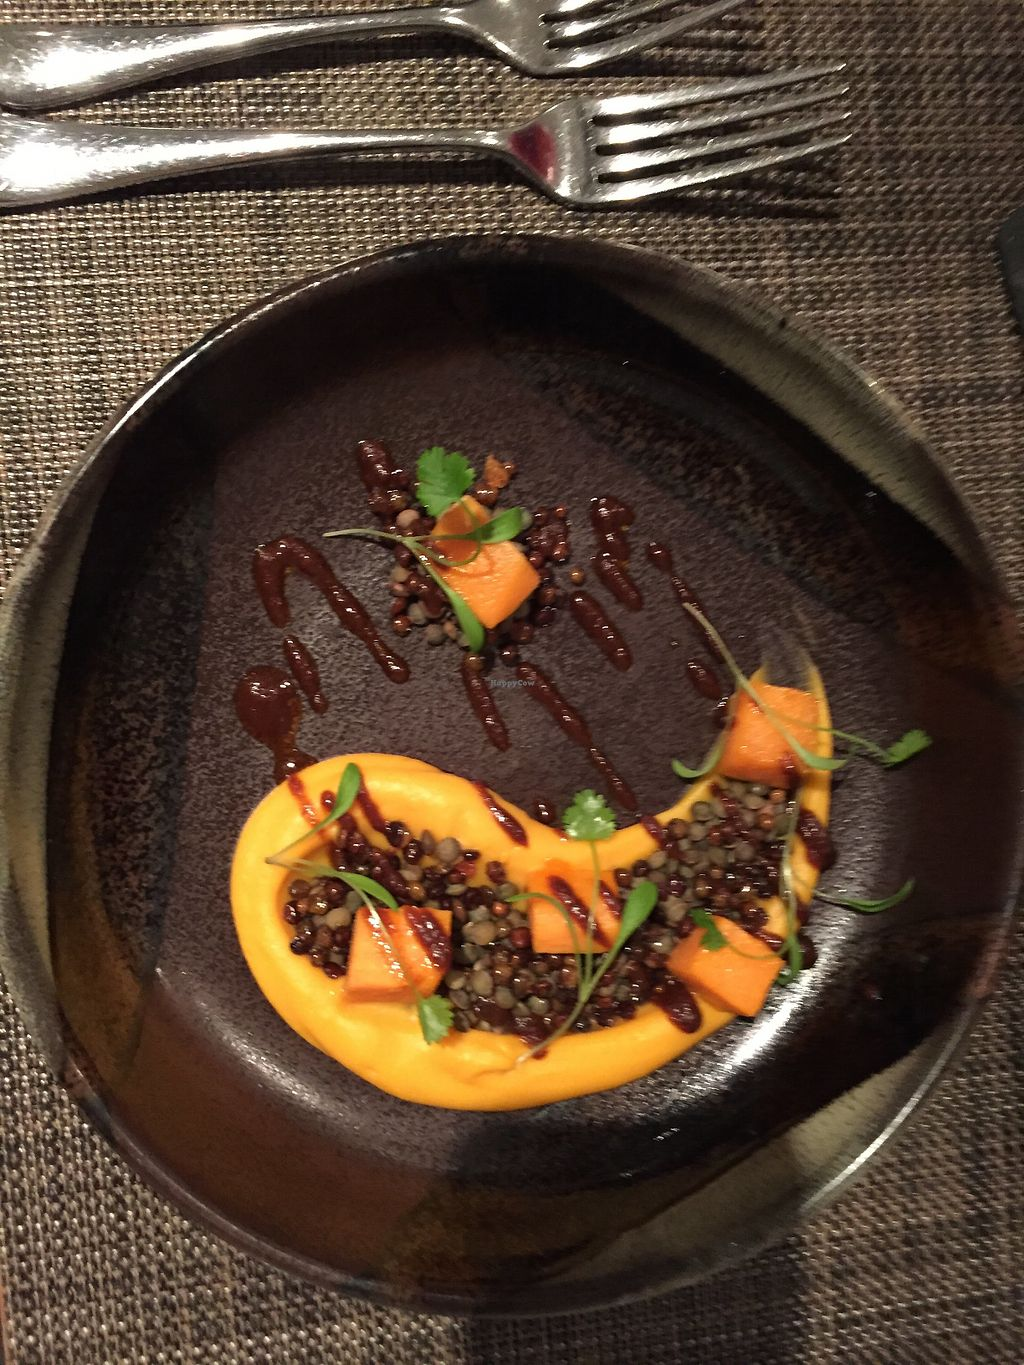 """Photo of Vanilla Black  by <a href=""""/members/profile/cowcowcow"""">cowcowcow</a> <br/>Squash and crispy lentils <br/> May 4, 2018  - <a href='/contact/abuse/image/14093/394923'>Report</a>"""